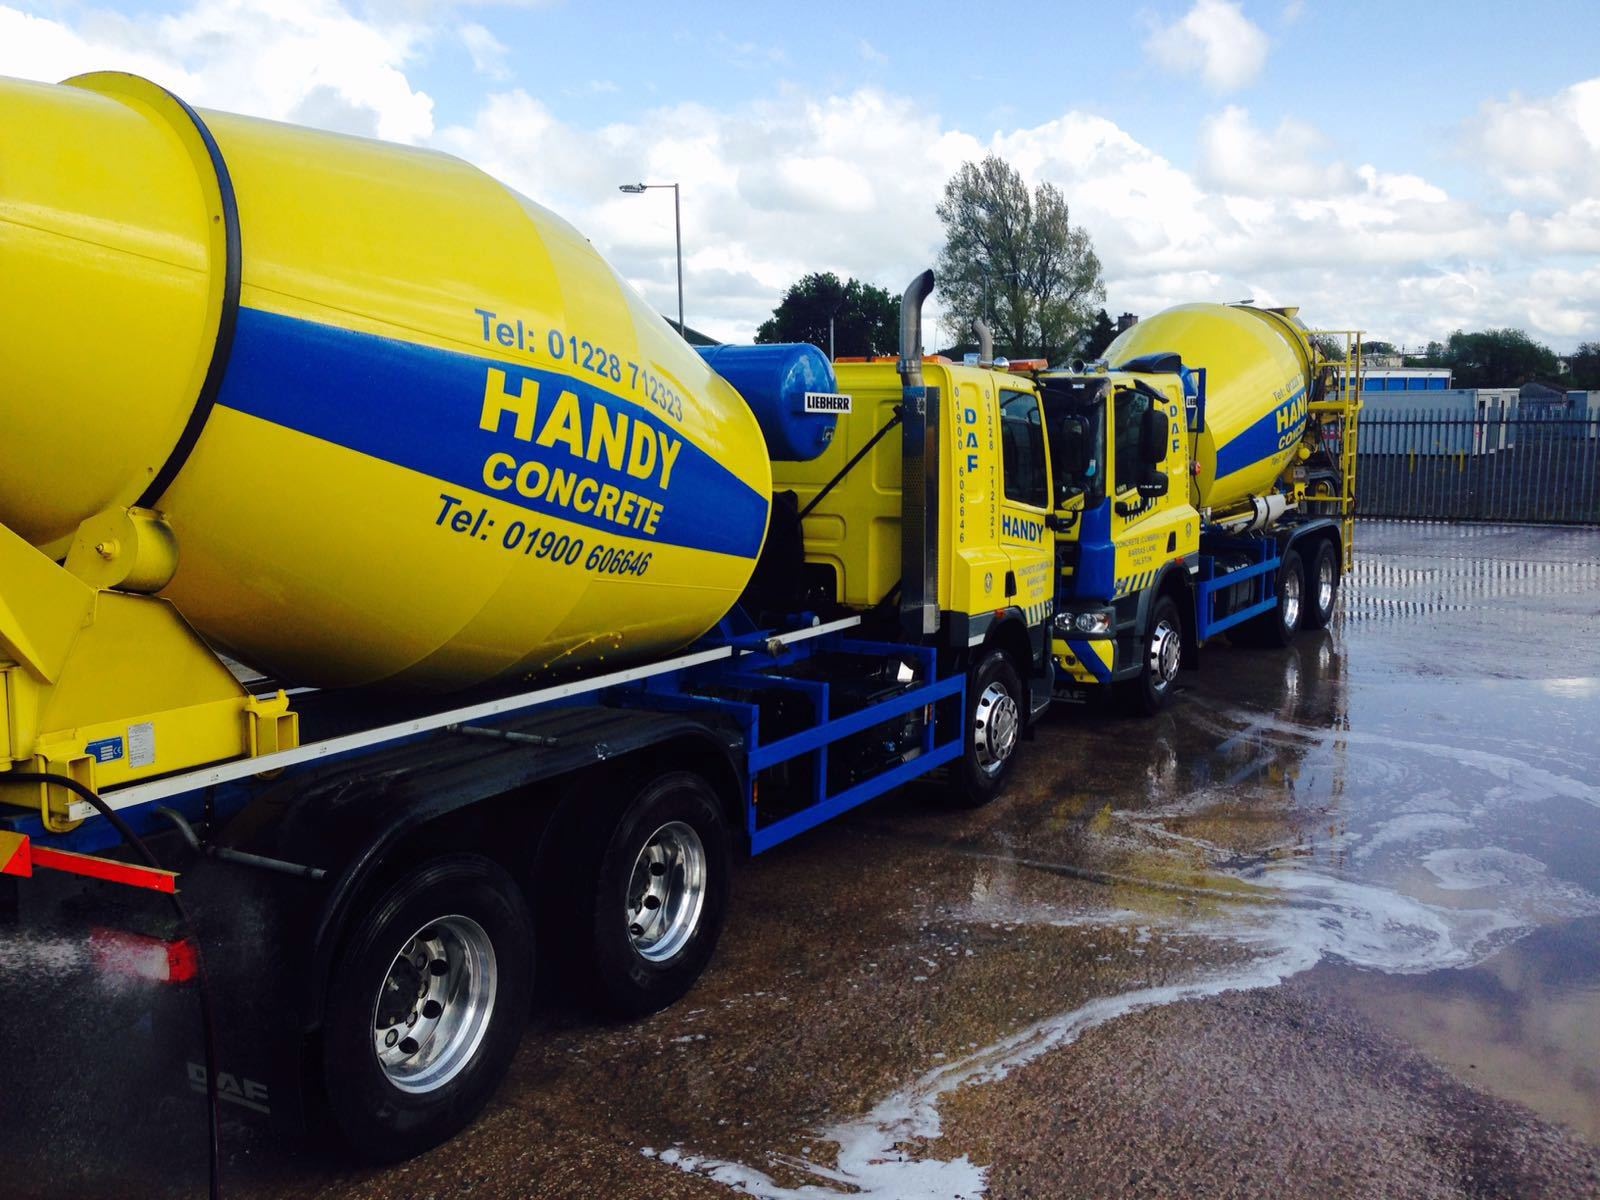 Handy Concrete Cement Trucks